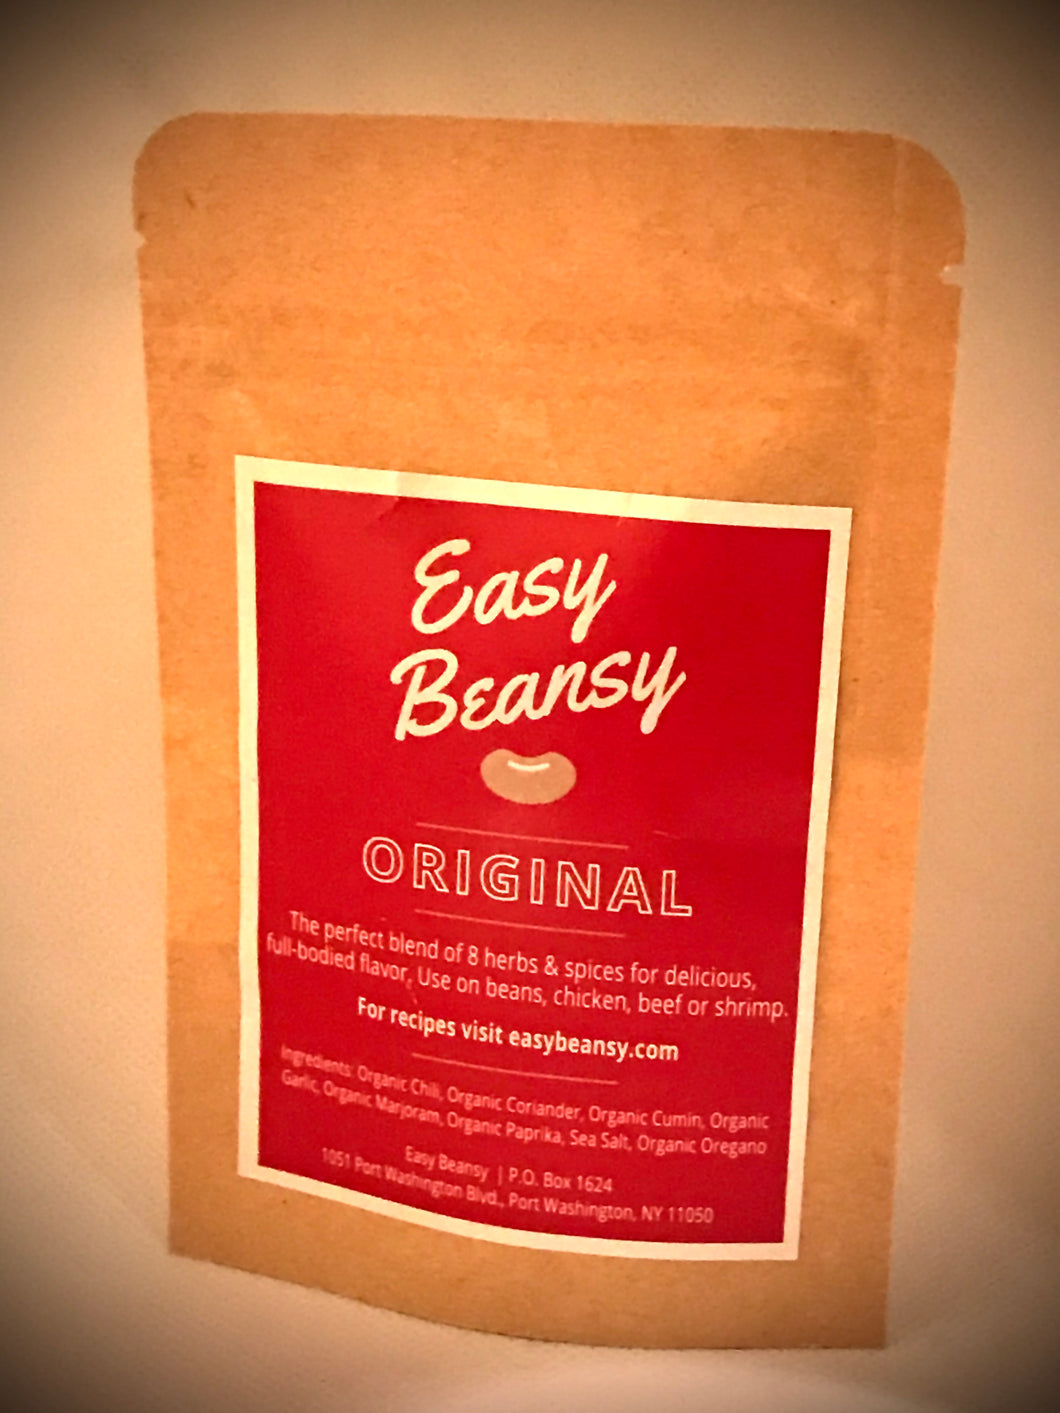 EASY BEANSY SALT-FREE Original Spice Mix